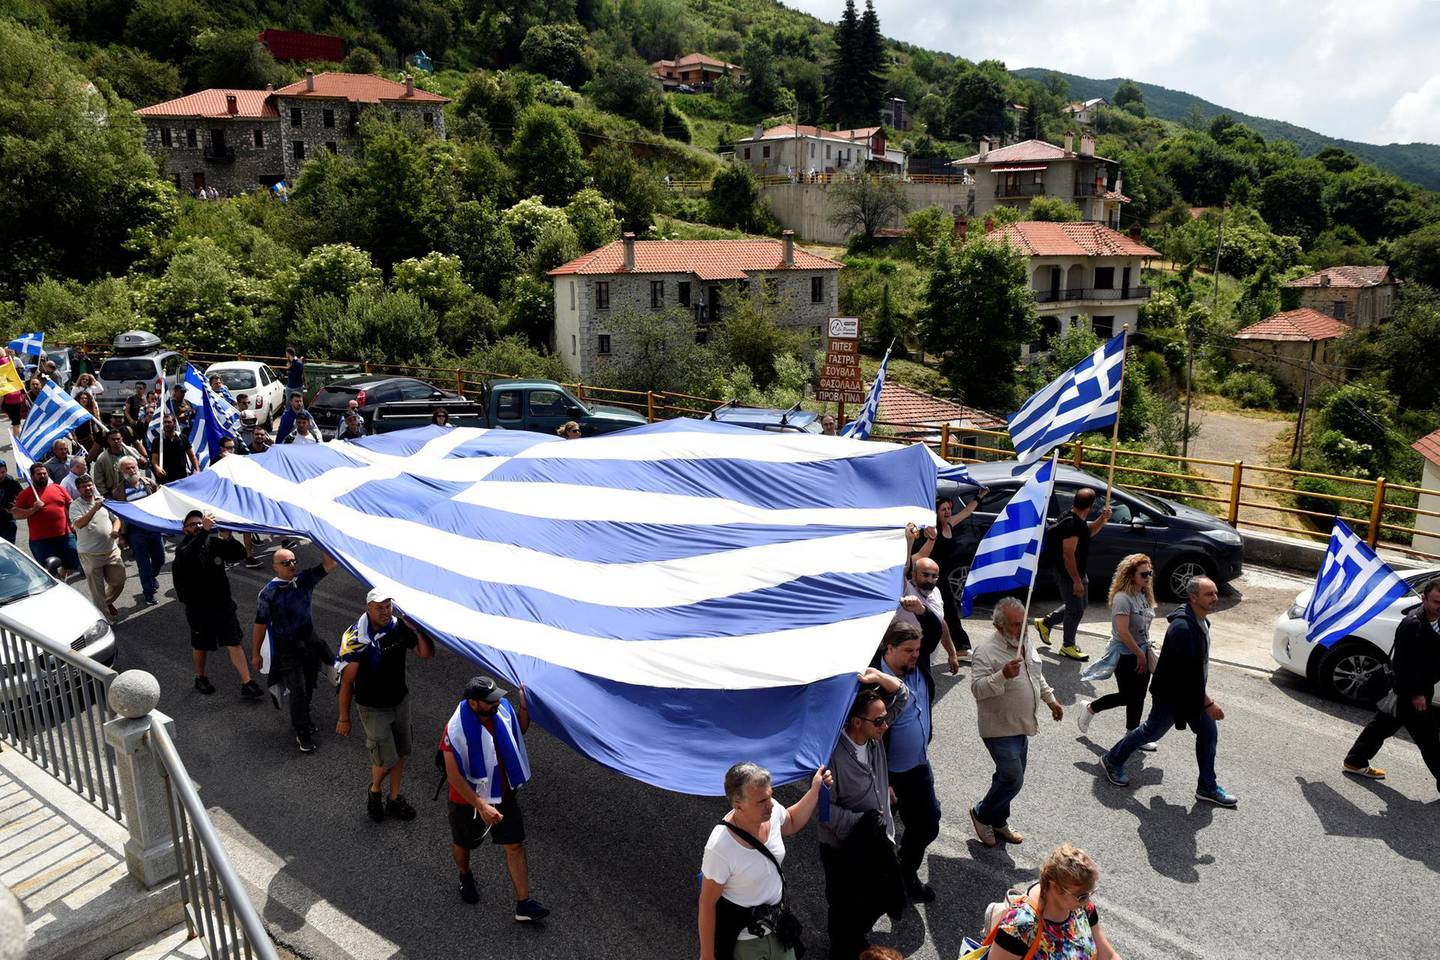 Protesters carry a giant Greek national flag during a demonstration against the agreement reached by Greece and Macedonia to resolve a dispute over the former Yugoslav republic's name, in Pisoderi village, northern Greece, June 17, 2018. REUTERS/Alexandros Avramidis